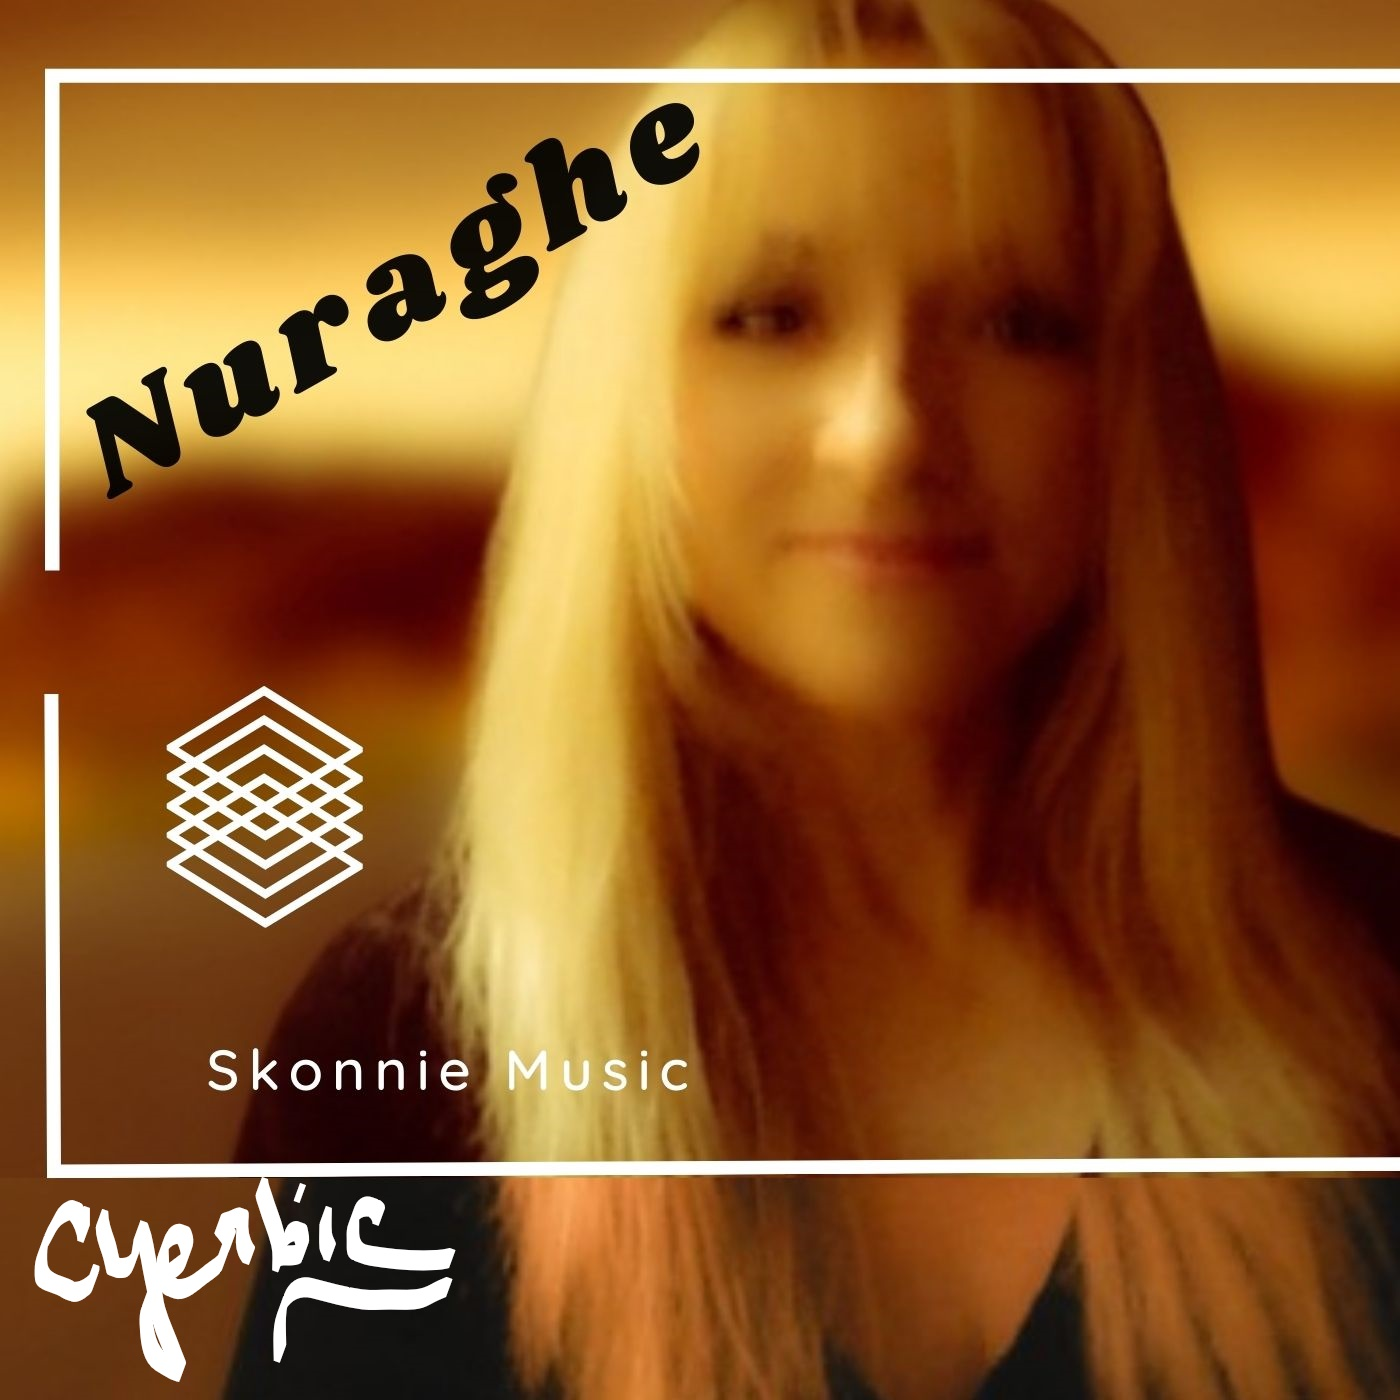 This is a prelease album cover for Nuraghe by Skonnie Music feat Connie Yerbic